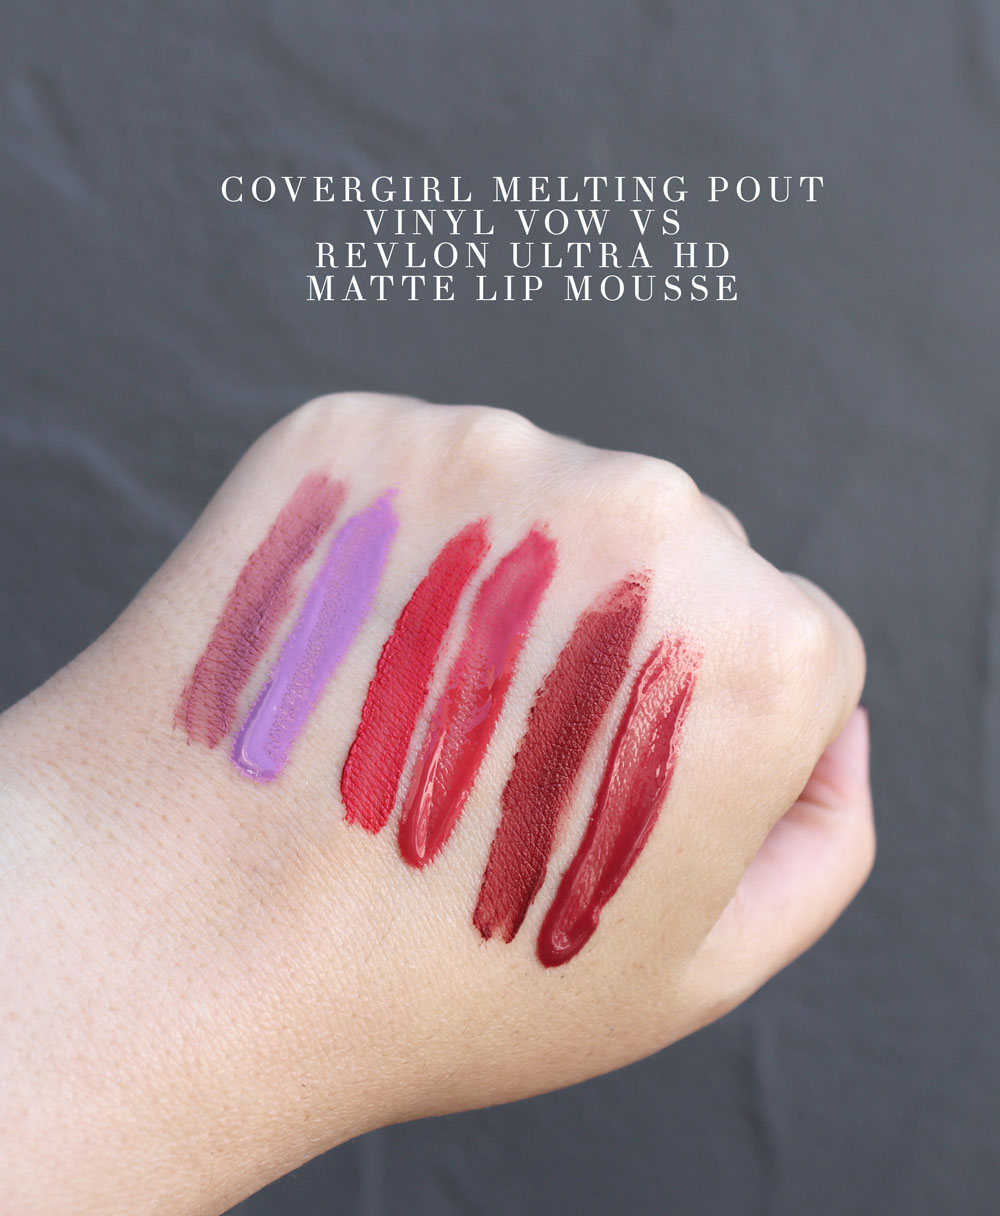 Cruelty free Covergirl dupe swatches for Revlon lipstick